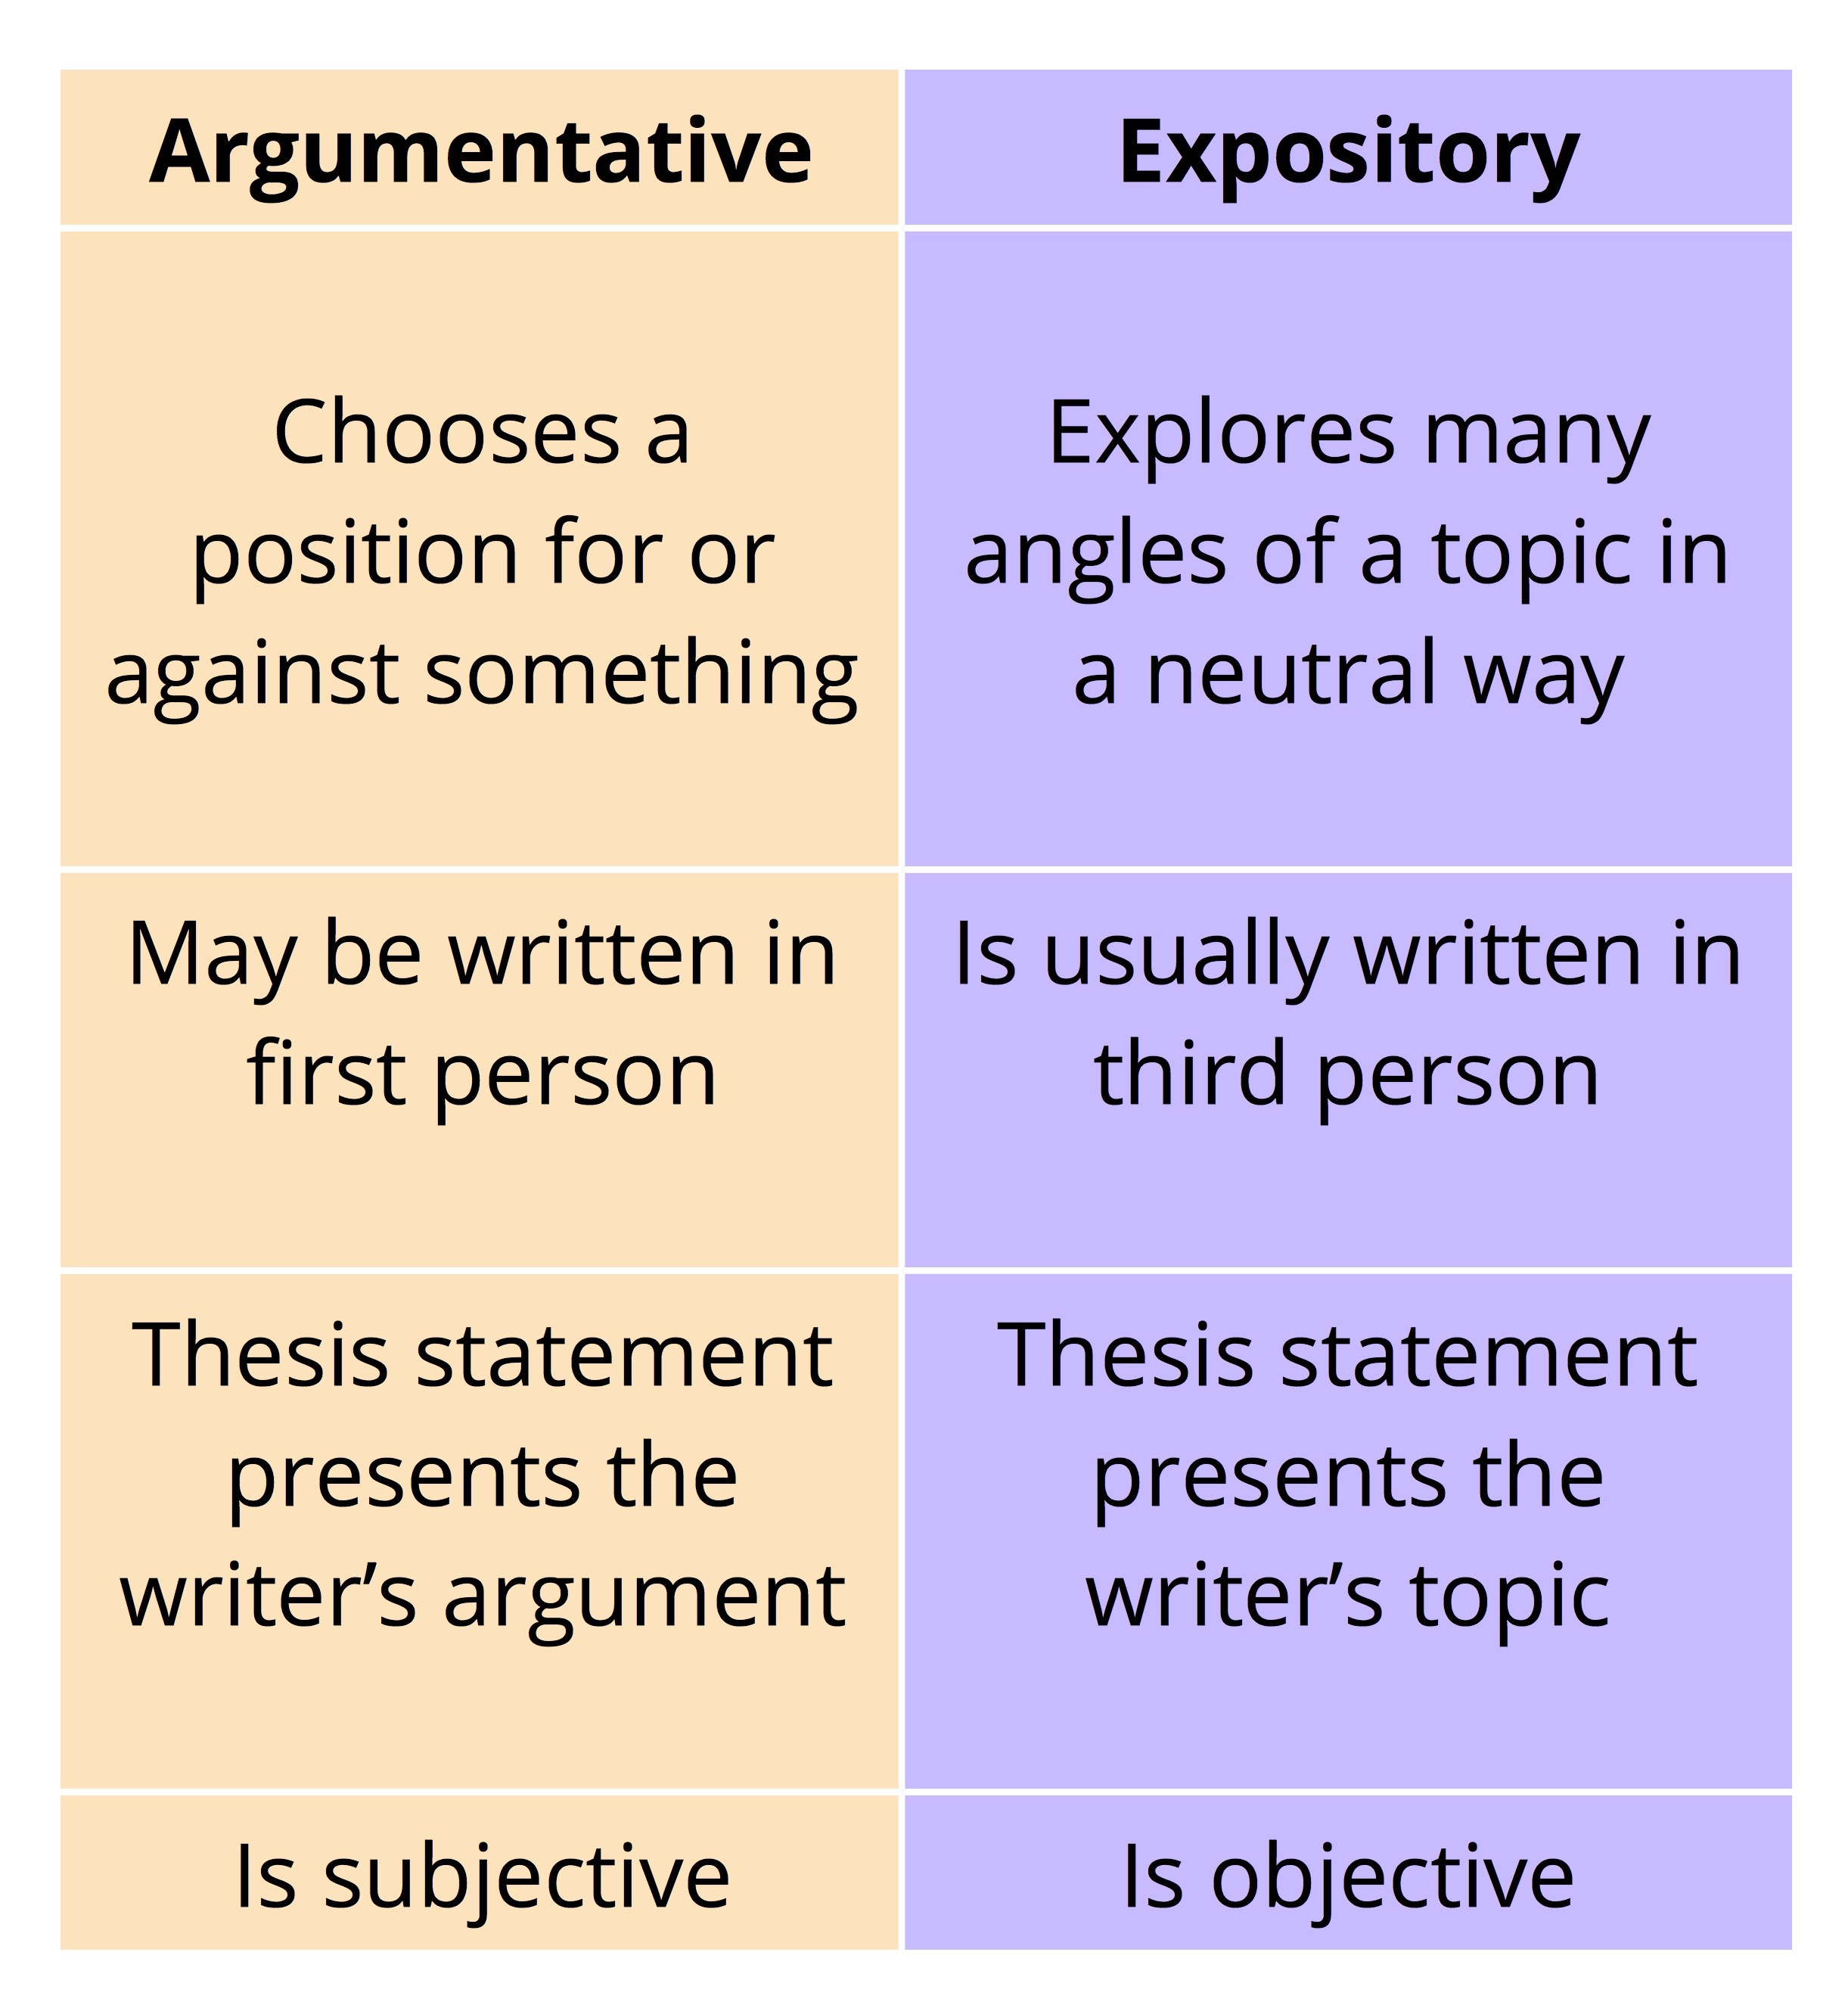 006 What Ispository Essayample How To Write An Tigers Start Argumentative Conclusion The Differences Between Anpository And E Body Paragraph Introduction Astounding Is A Expository Essay Analytical Writing In English Full